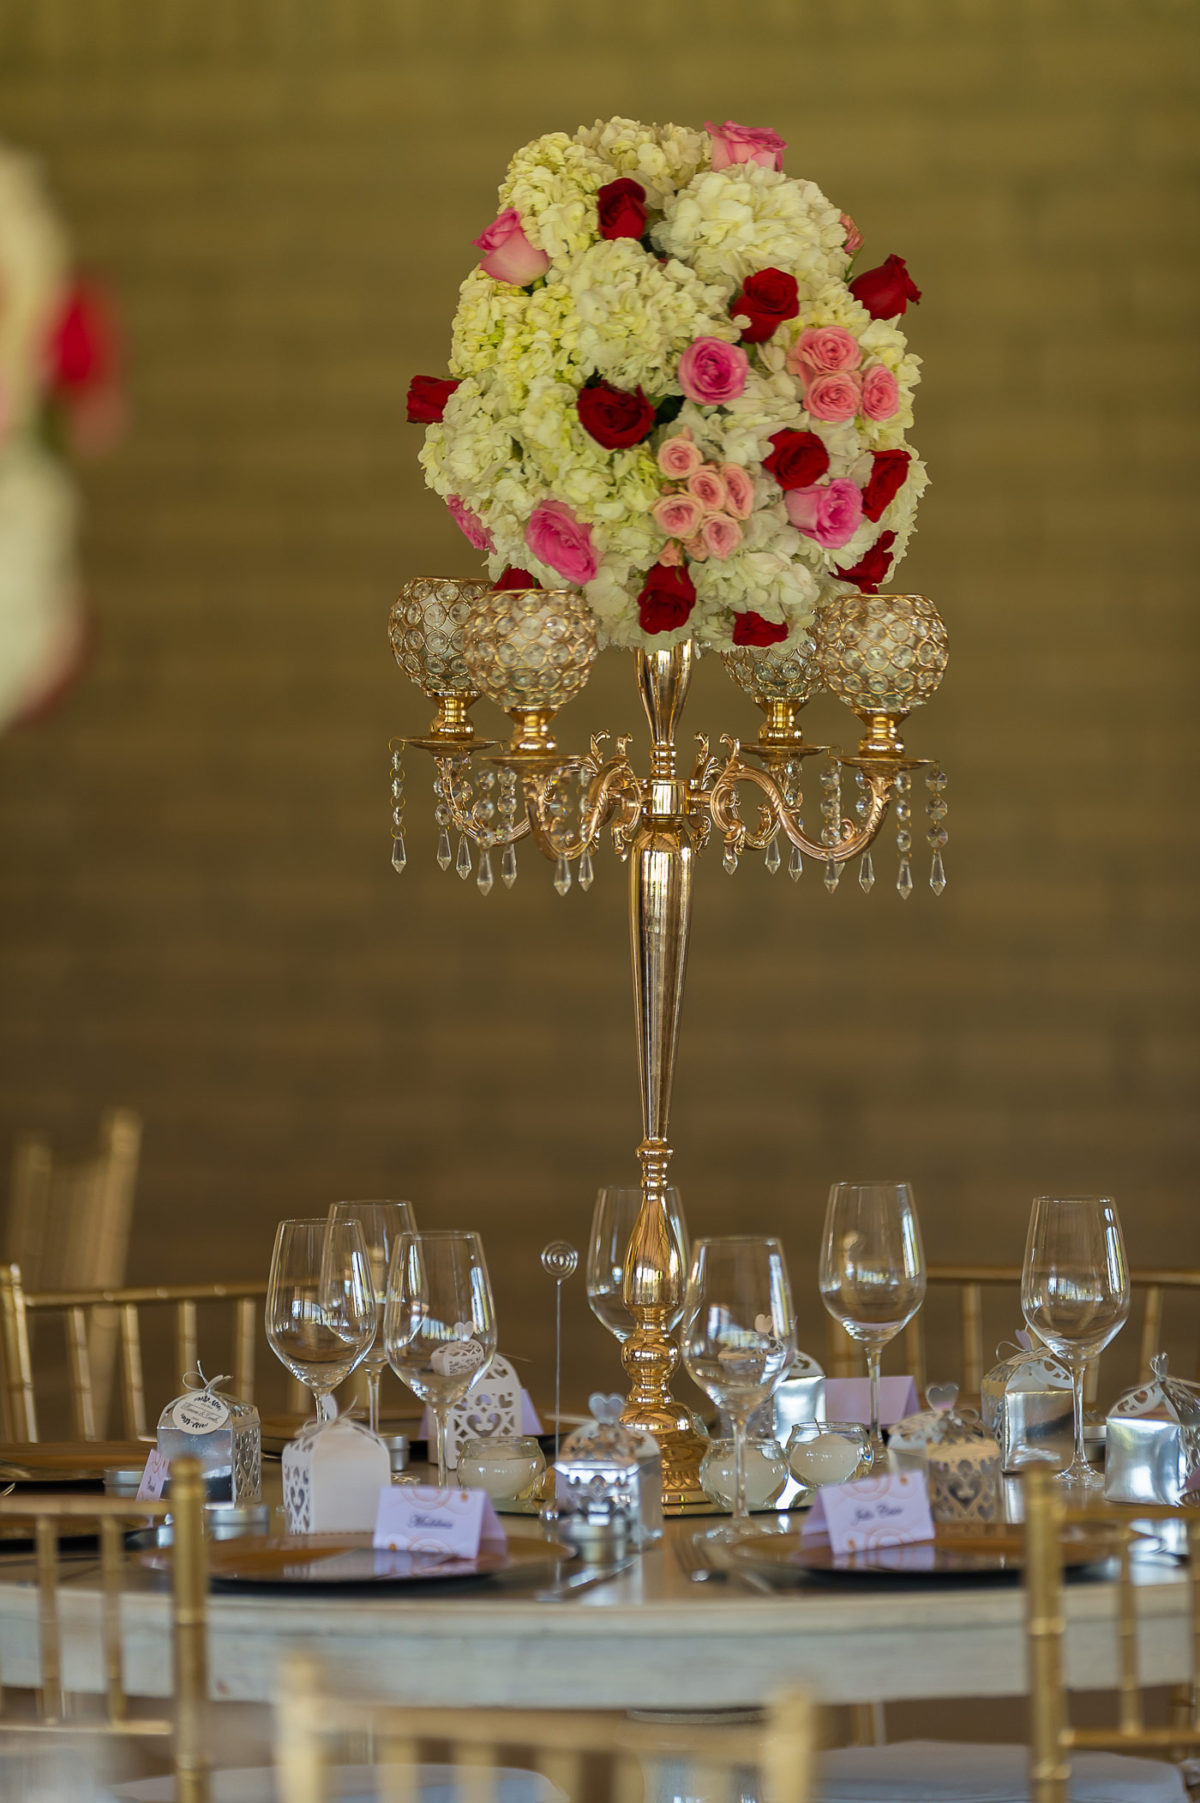 wedding decoration, wedding planner, decoracion de bodas, boda elegante, luxury wedding, candelabro dorado